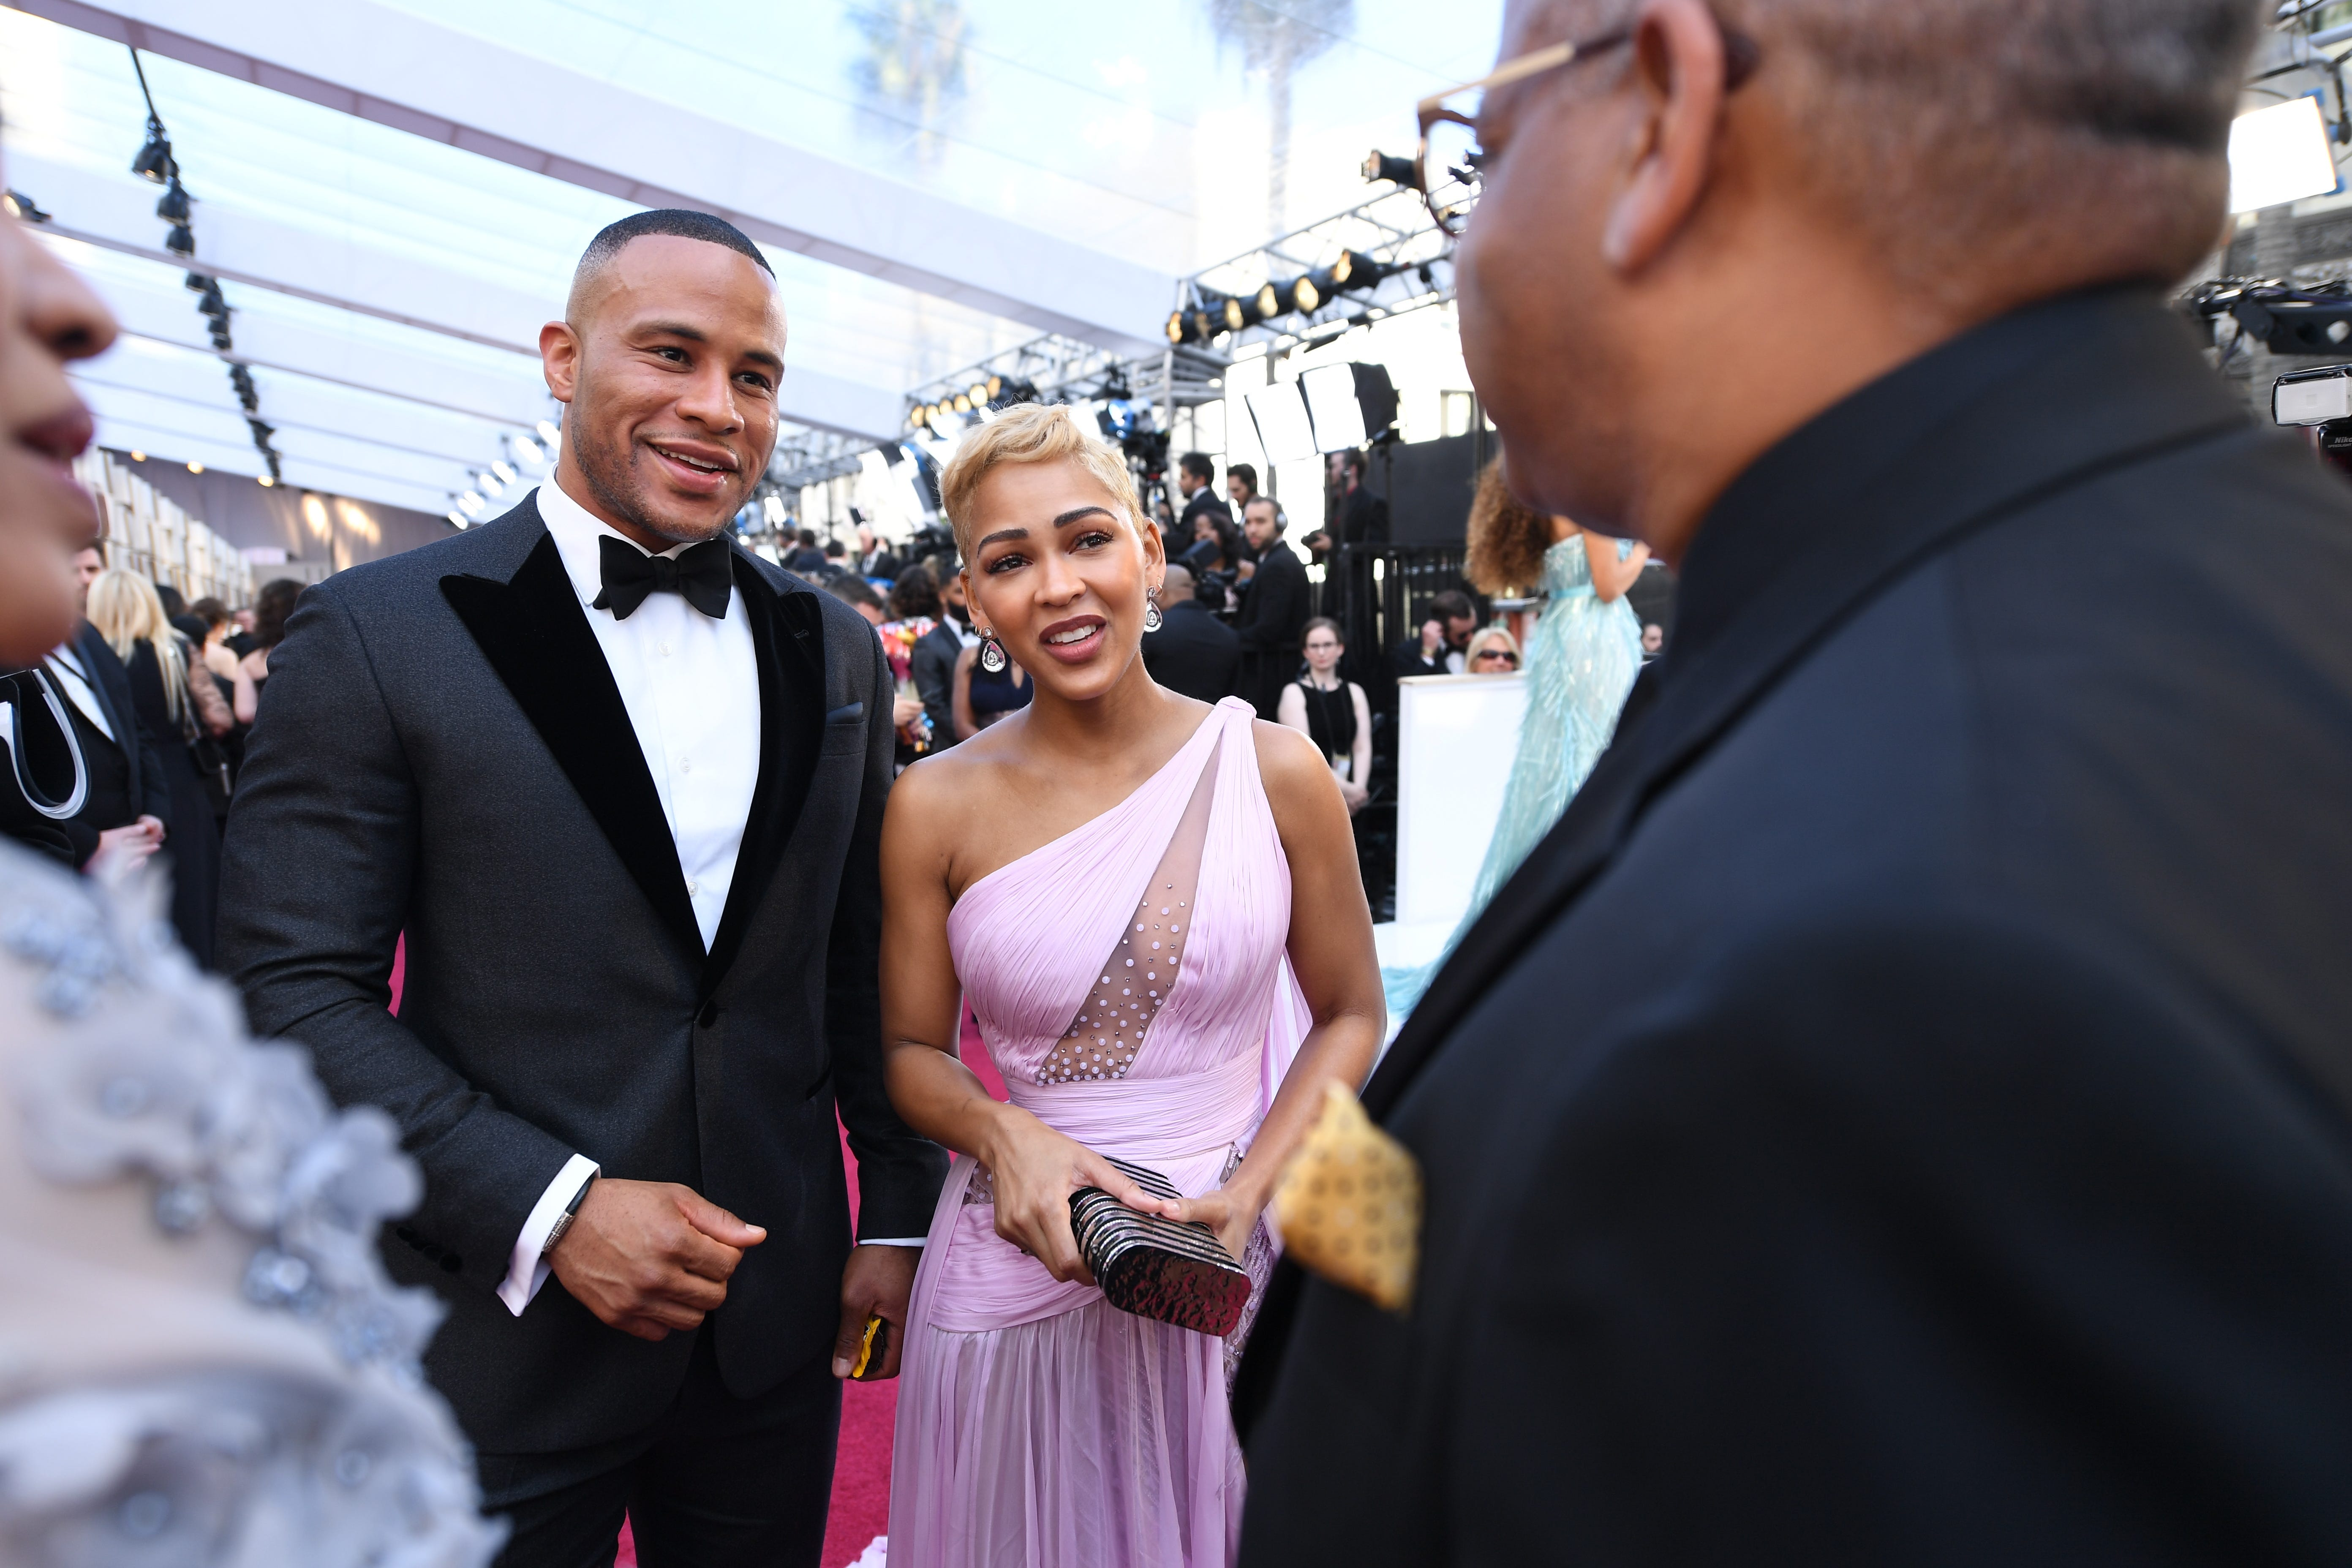 February 24, 2019; Los Angeles, CA, USA; DeVon Franklin (L) and Meagan Good arrive at the 91st Academy Awards at the Dolby Theatre. Mandatory Credit: Robert Hanashiro-USA TODAY NETWORK (Via OlyDrop)